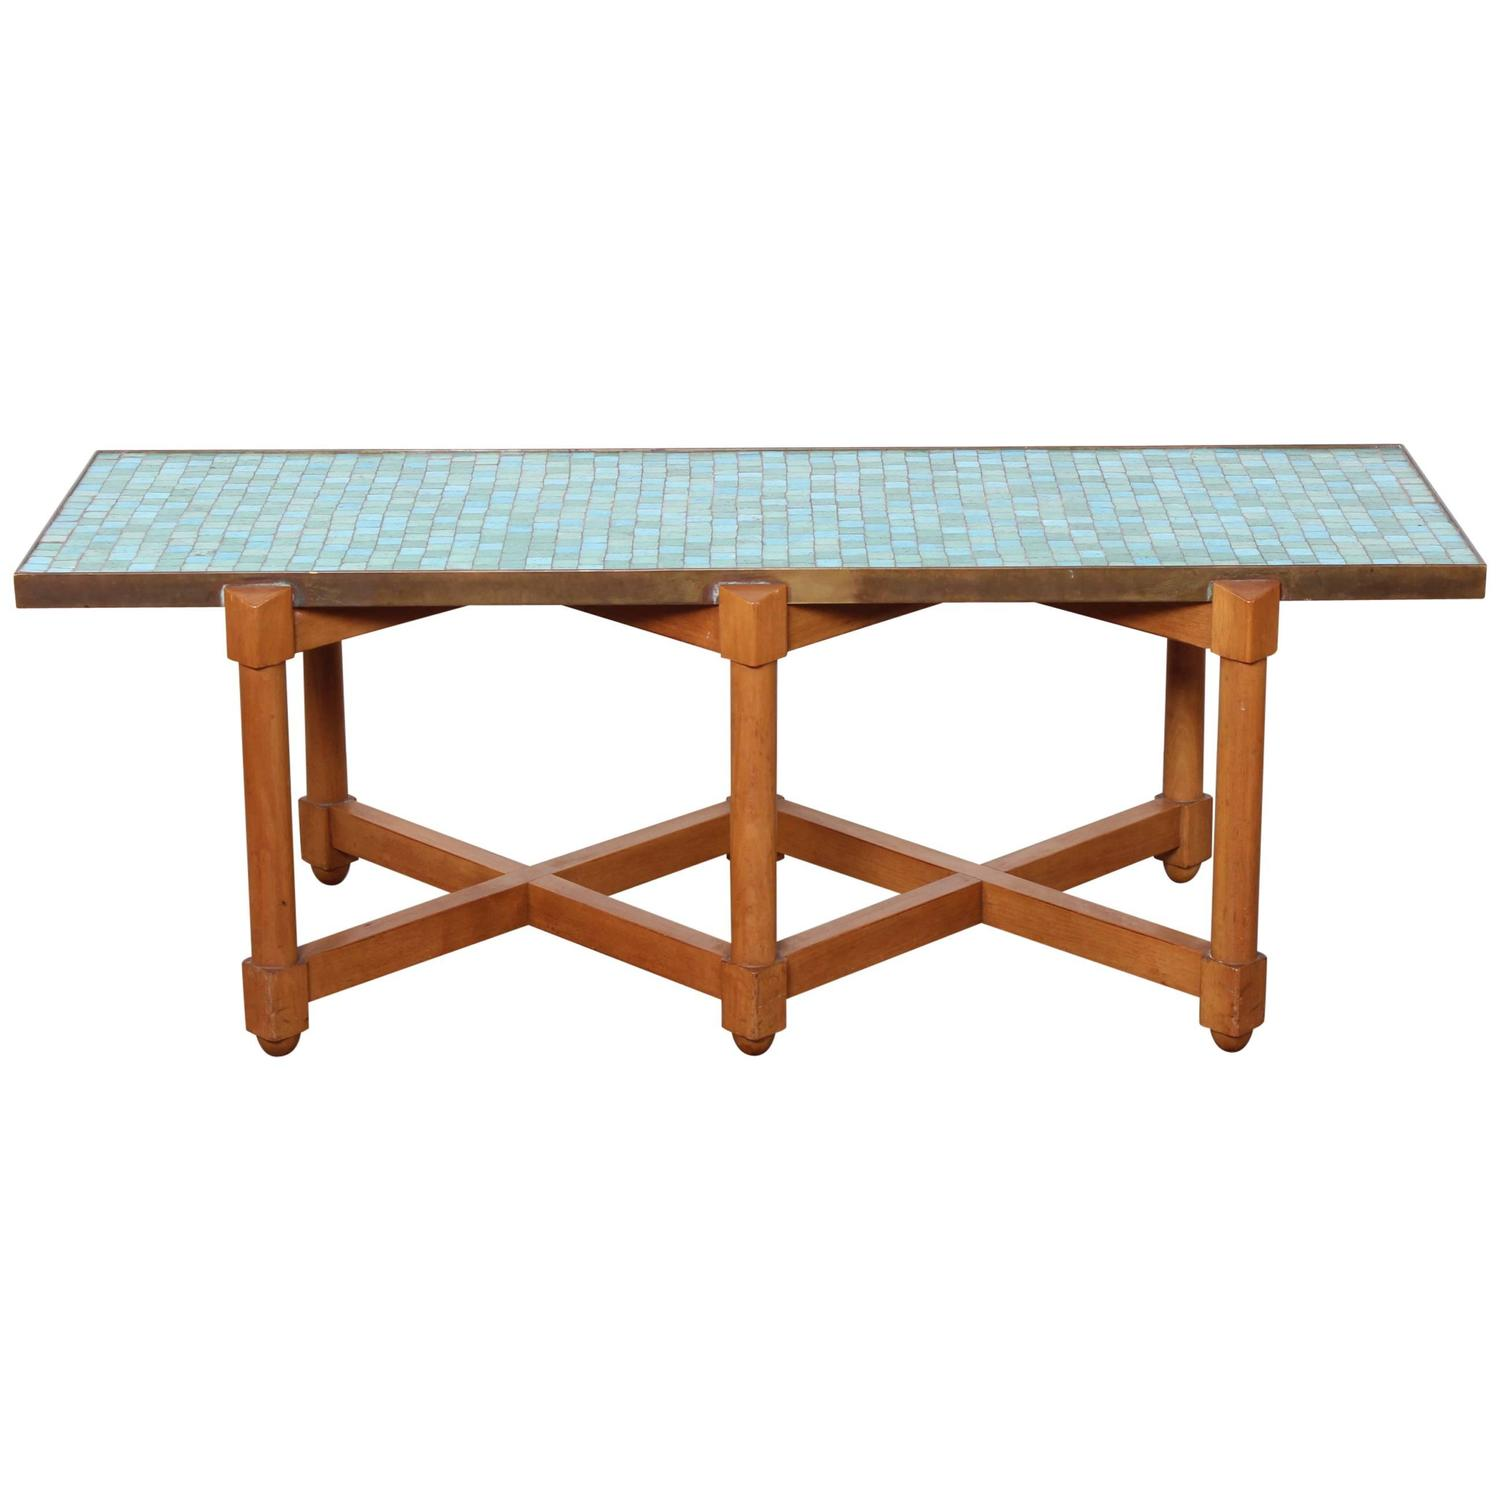 Murano Tile Table by Edward Wormley for Dunbar at 1stdibs